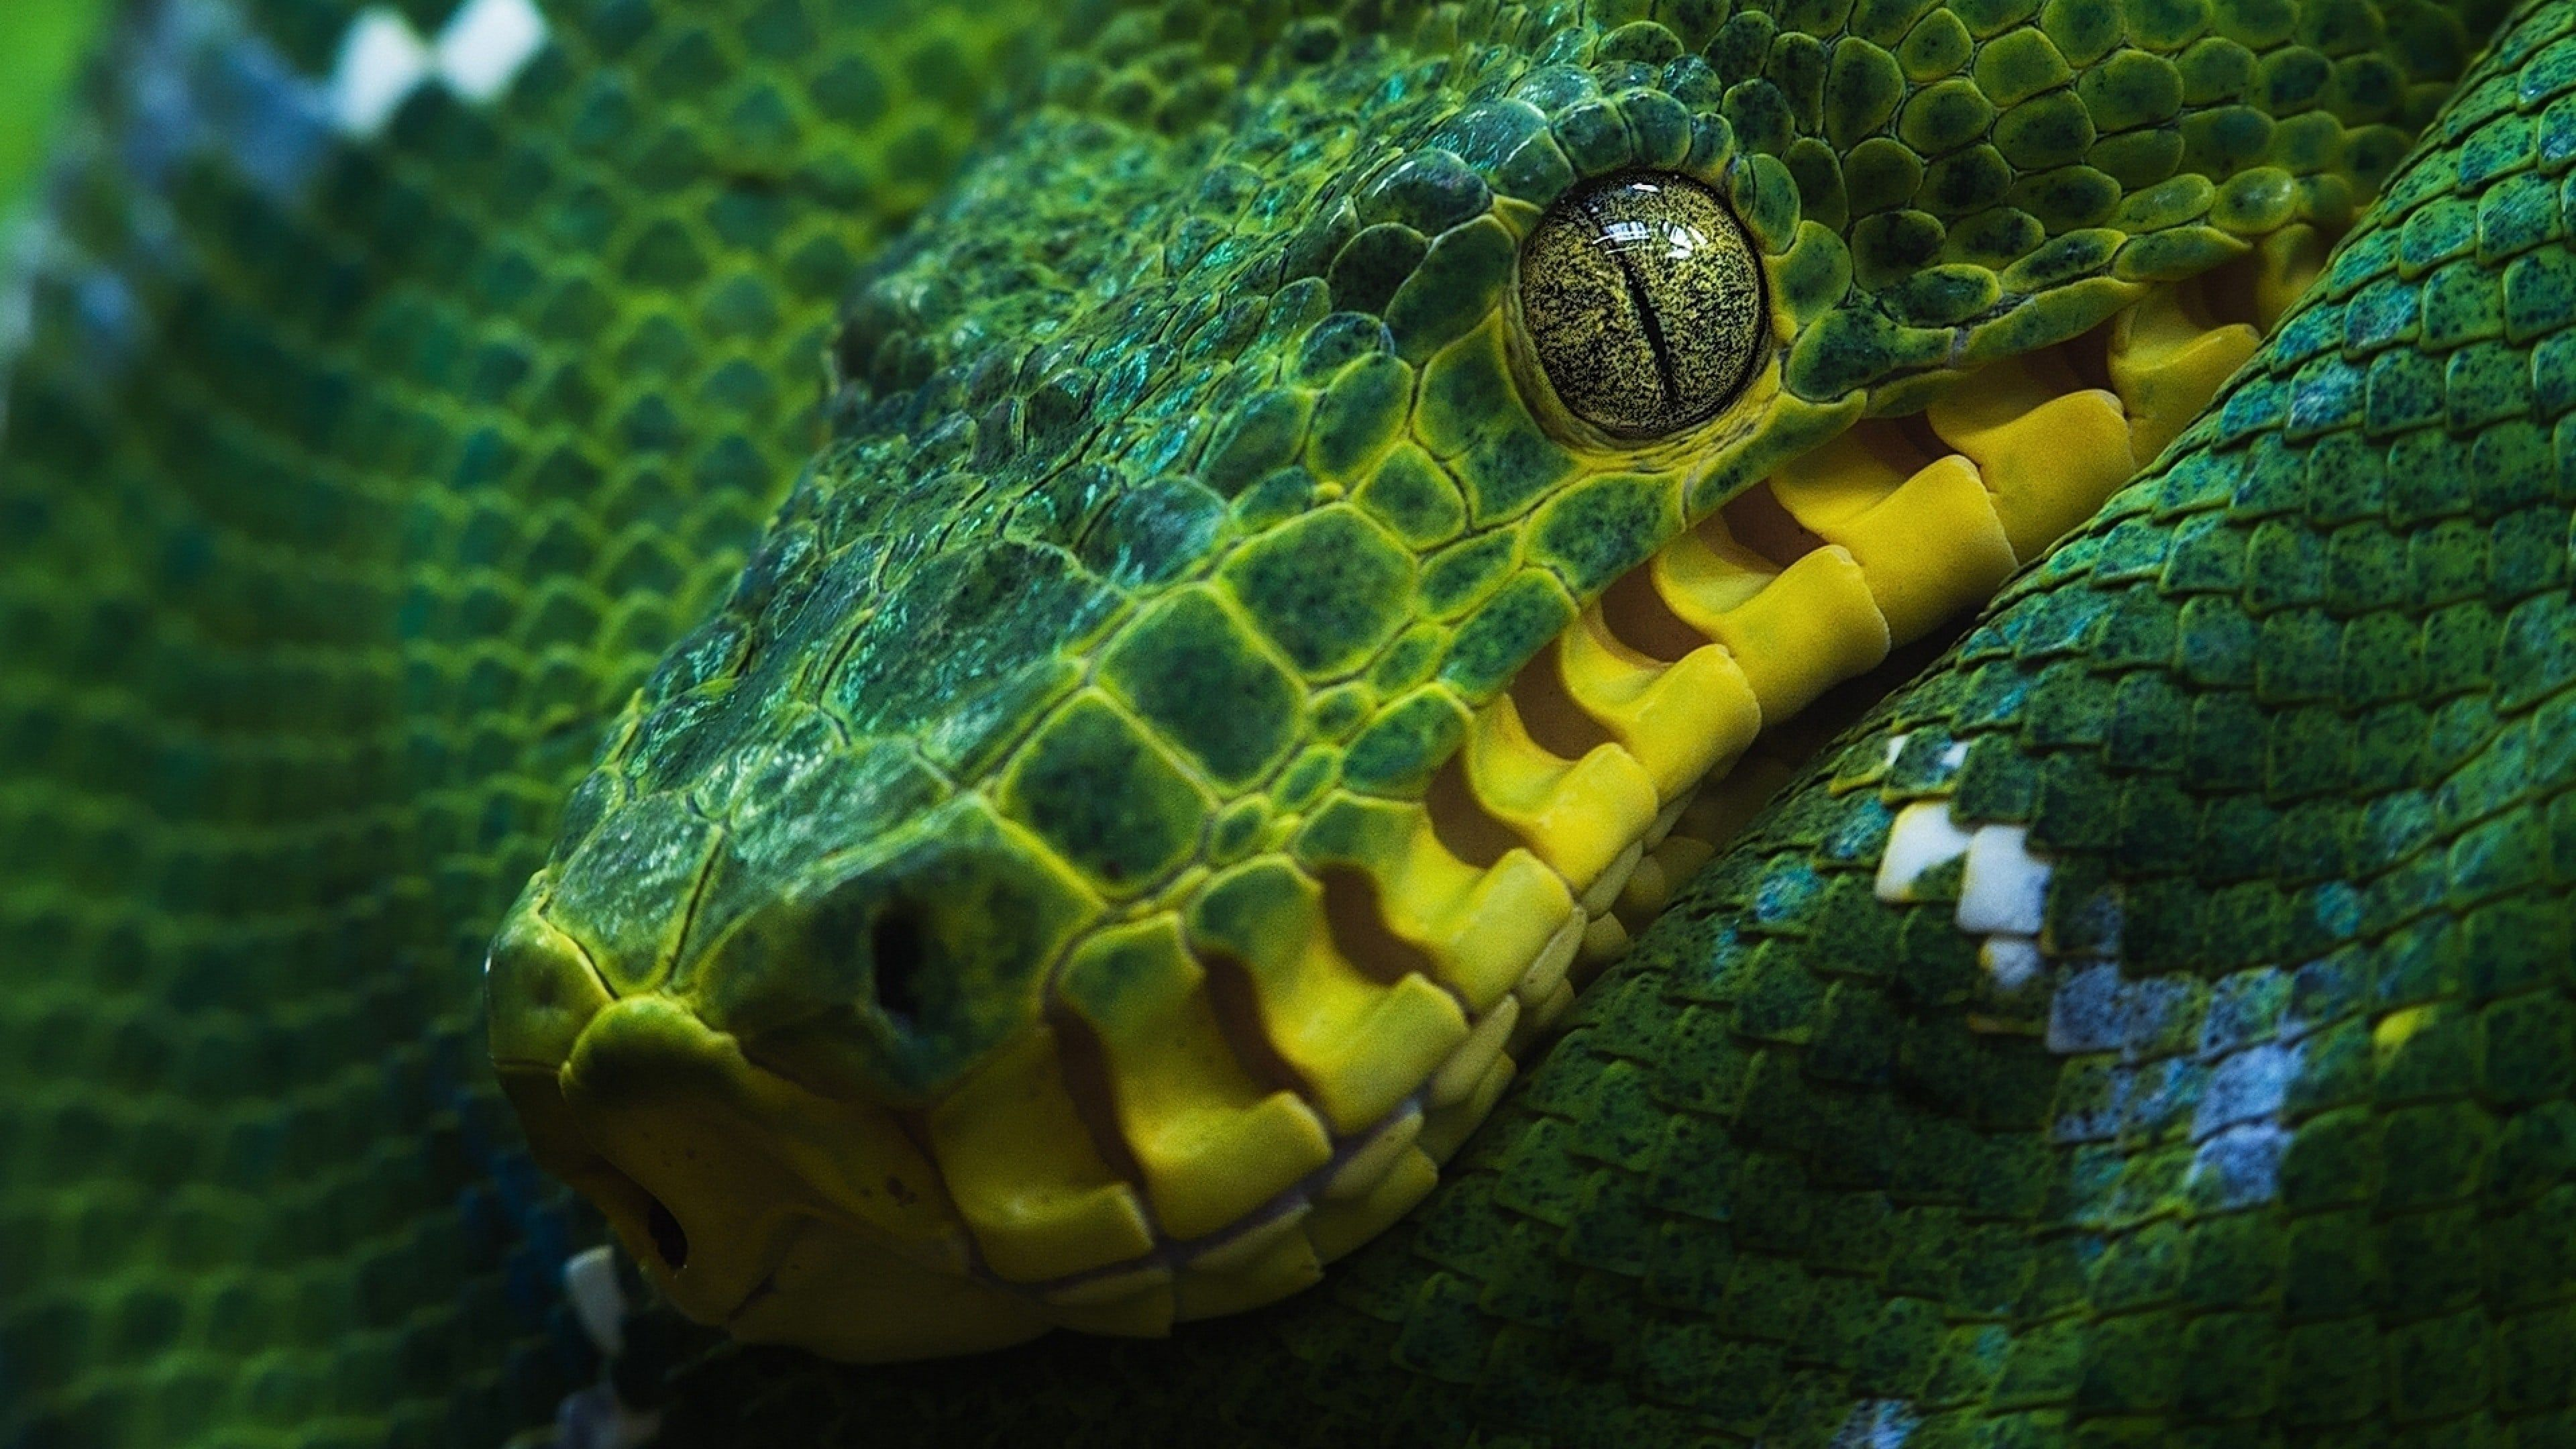 Wallpapers Boa Constrictor Snake Green Macro CoolWallpapers.site